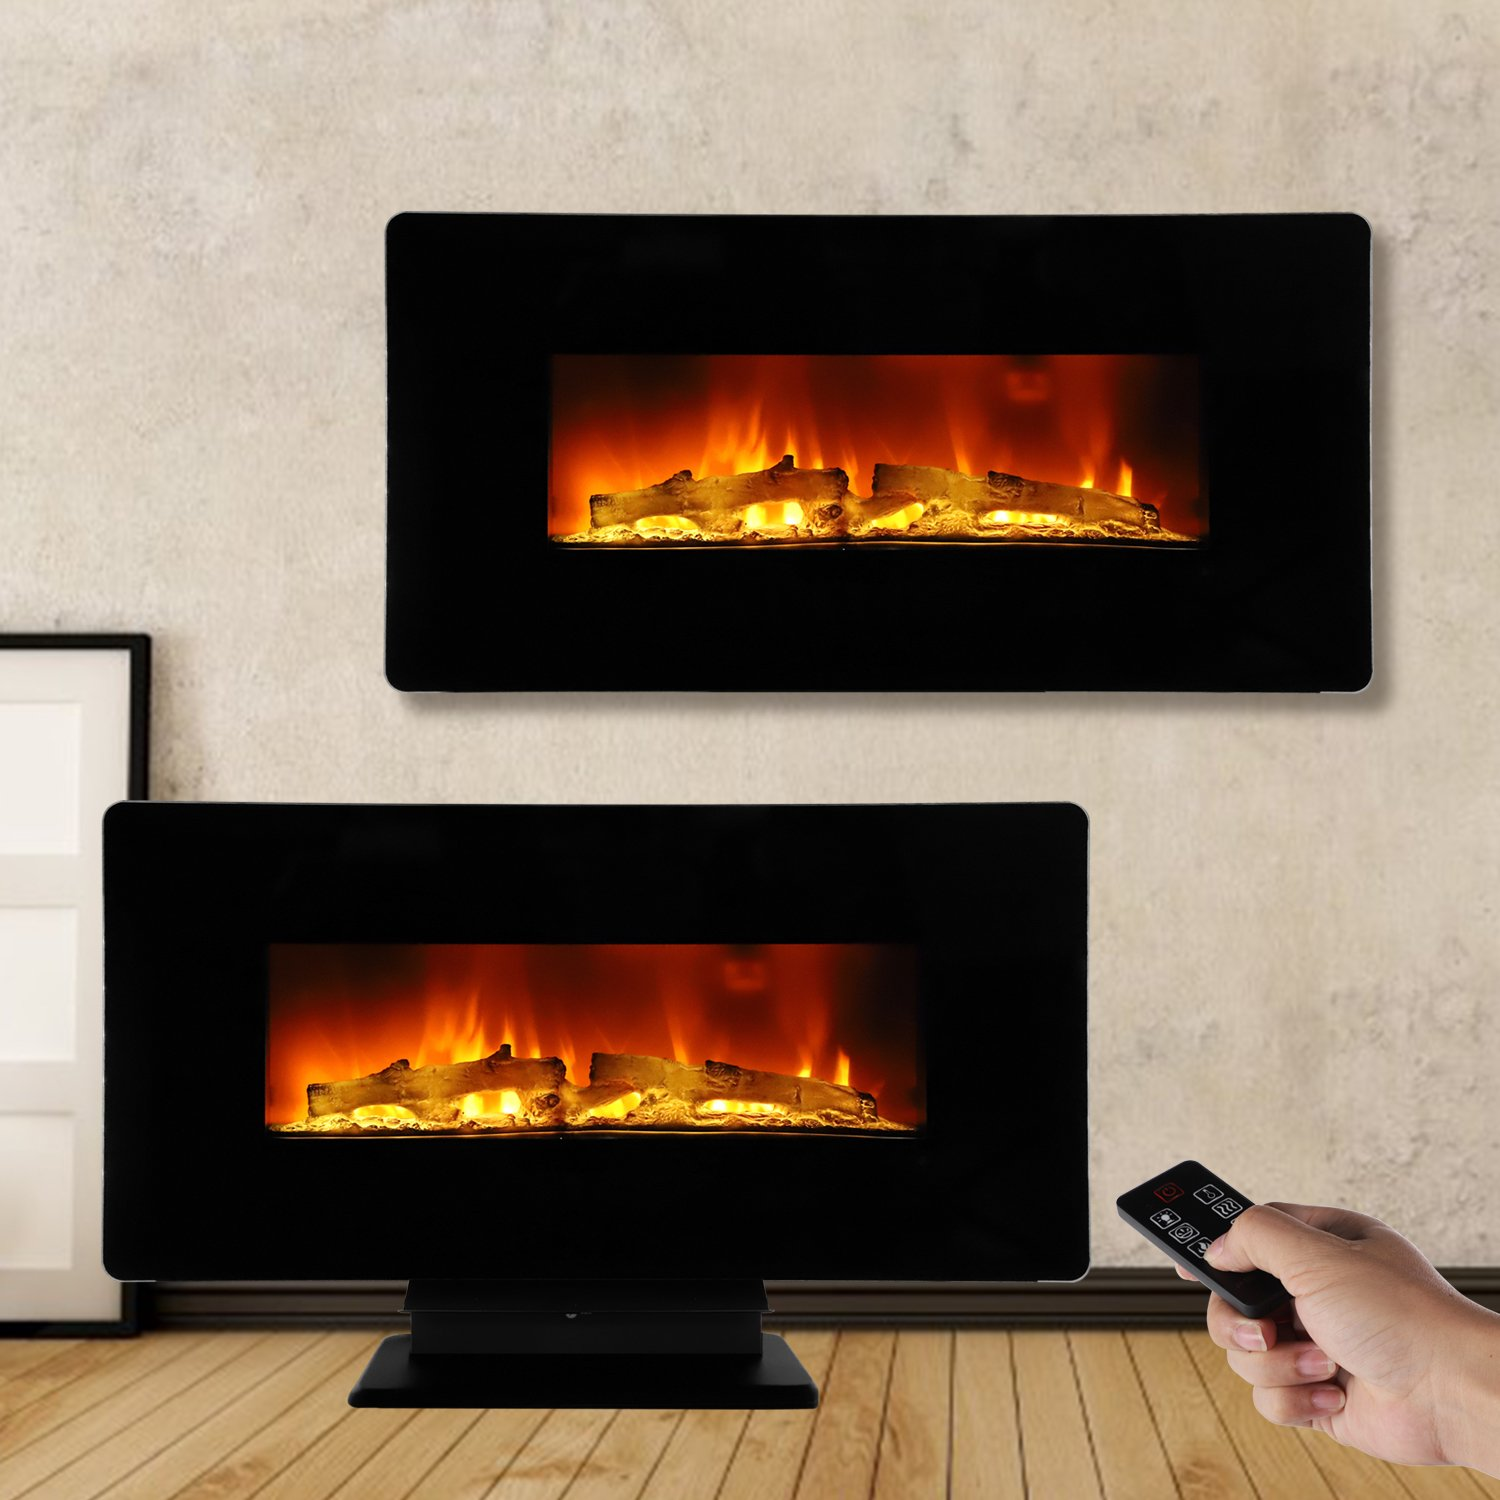 ROVSUN 36'' Electric Fireplace 1400W,2 in 1 Logs Wall Mounted or Freestanding Adjustable Heater With Remote Control & Timer,Flat Panel,Featuring 36 Color Mode Combinations, CSA Listed(Black)